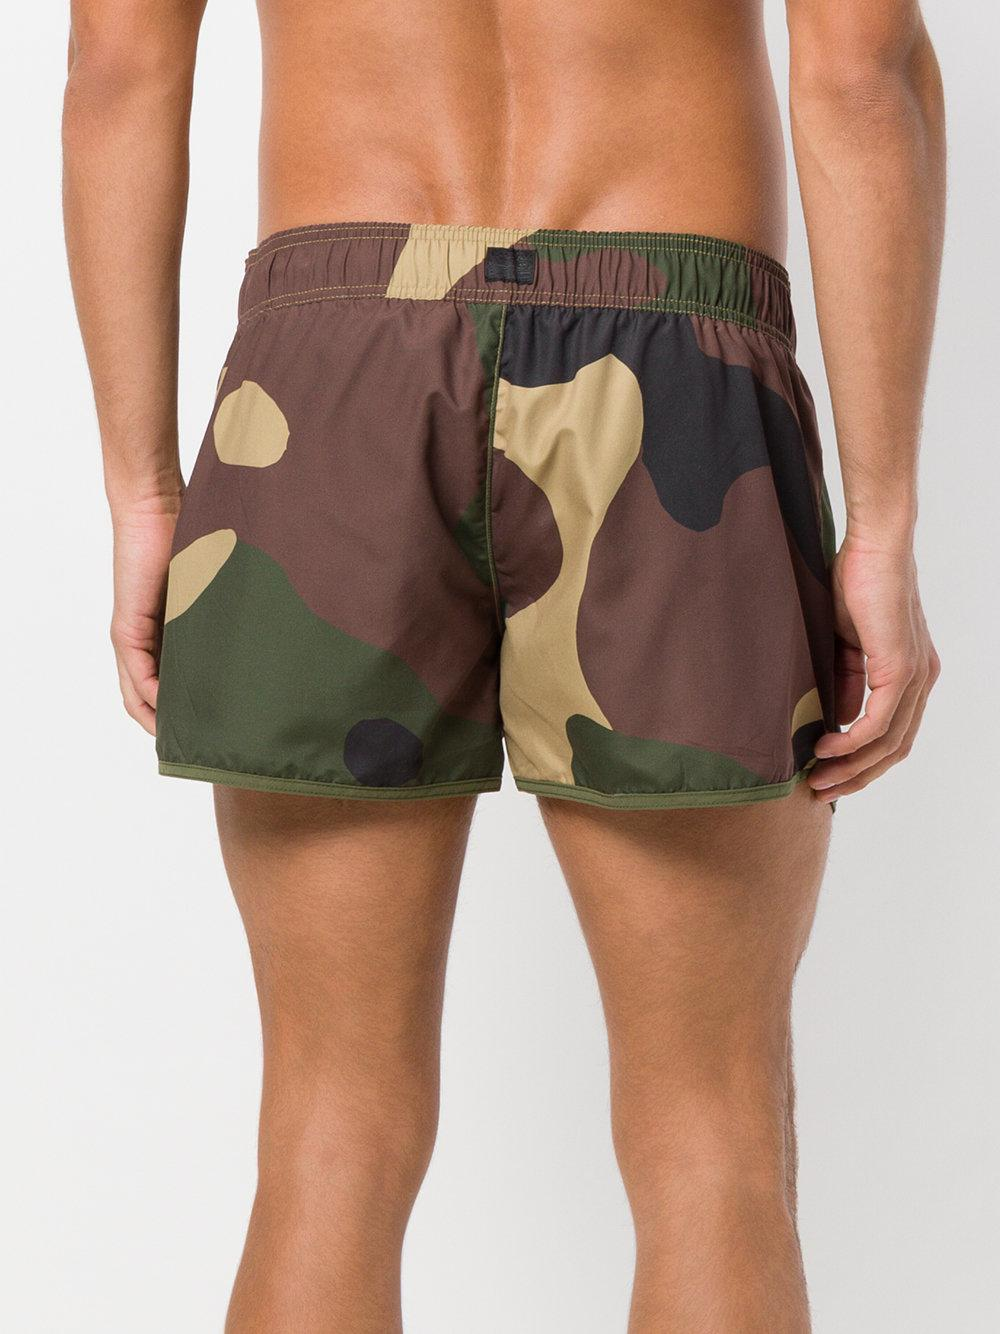 474d77285b G-Star RAW Camouflage Print Swimming Trunks in Green for Men - Lyst